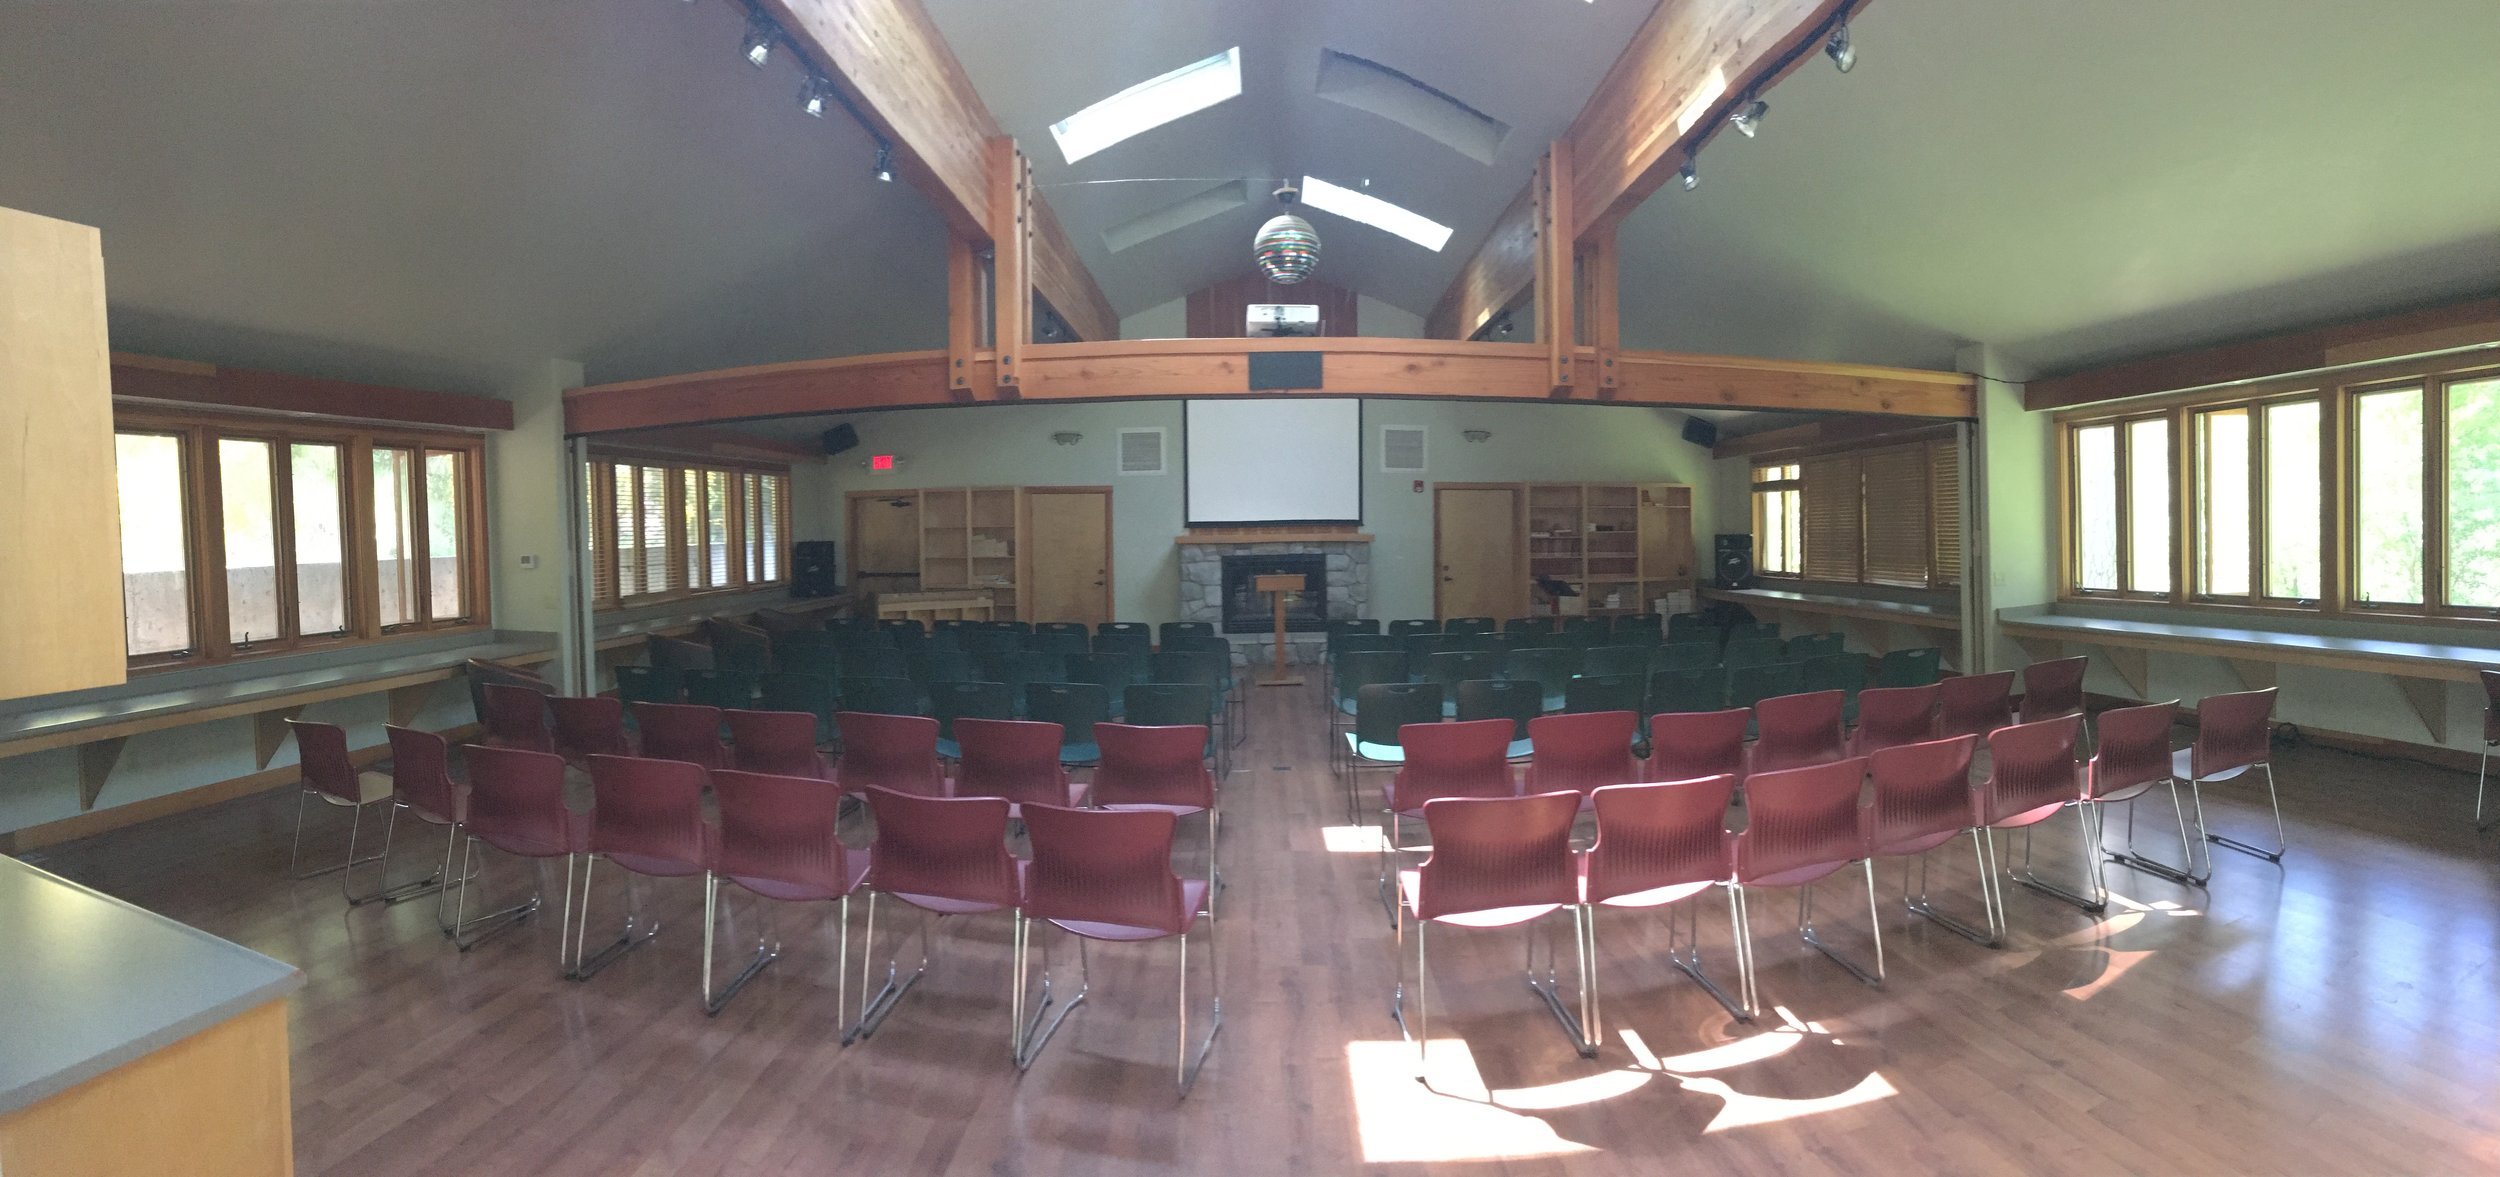 Camsey Victory Chapel - A comfortable, mid-size room that creates an intimate atmosphere for groups up to 90 people. Equipped with a sound system, LCD projector, and ceiling-mounted screen. This space also features a gas fireplace and room divider (if needed).